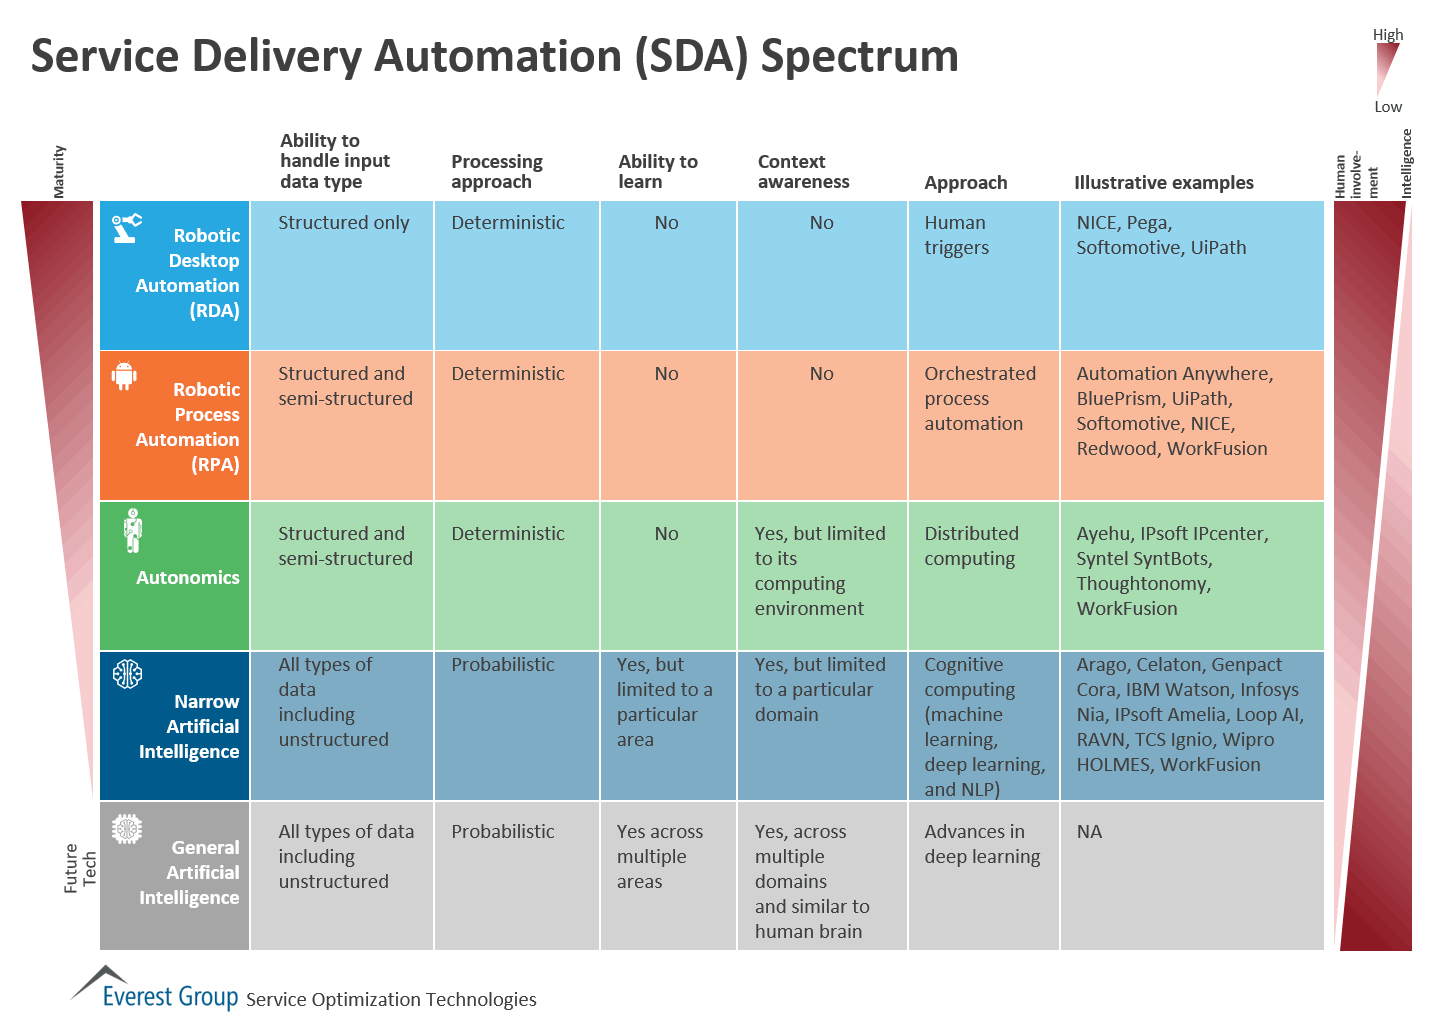 A continuum of types of service delivery automation